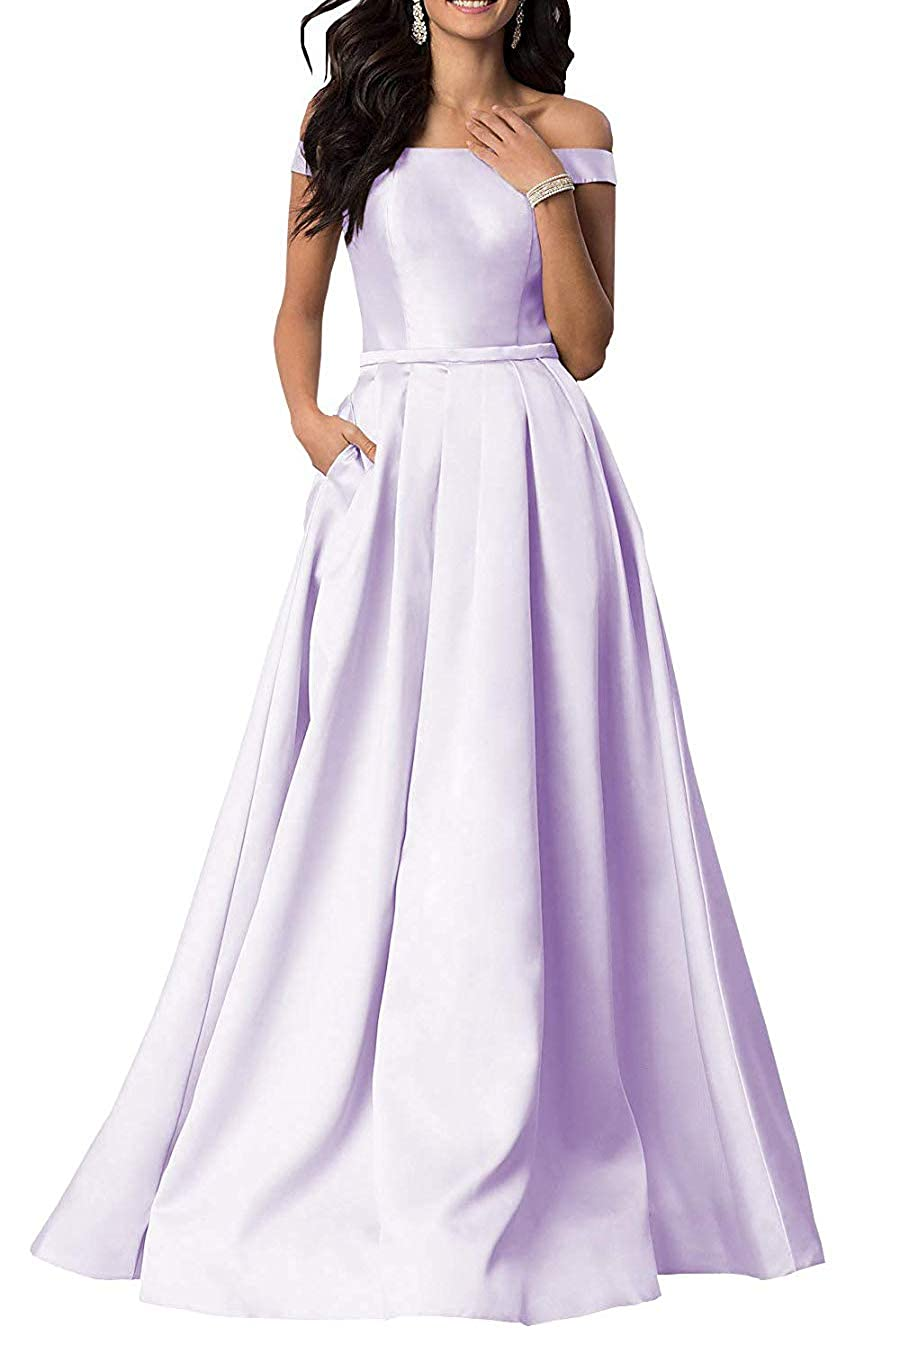 purplec Women's OffTheShoulder Satin Long Gown Prom Dress Evening Dresses with Pockets